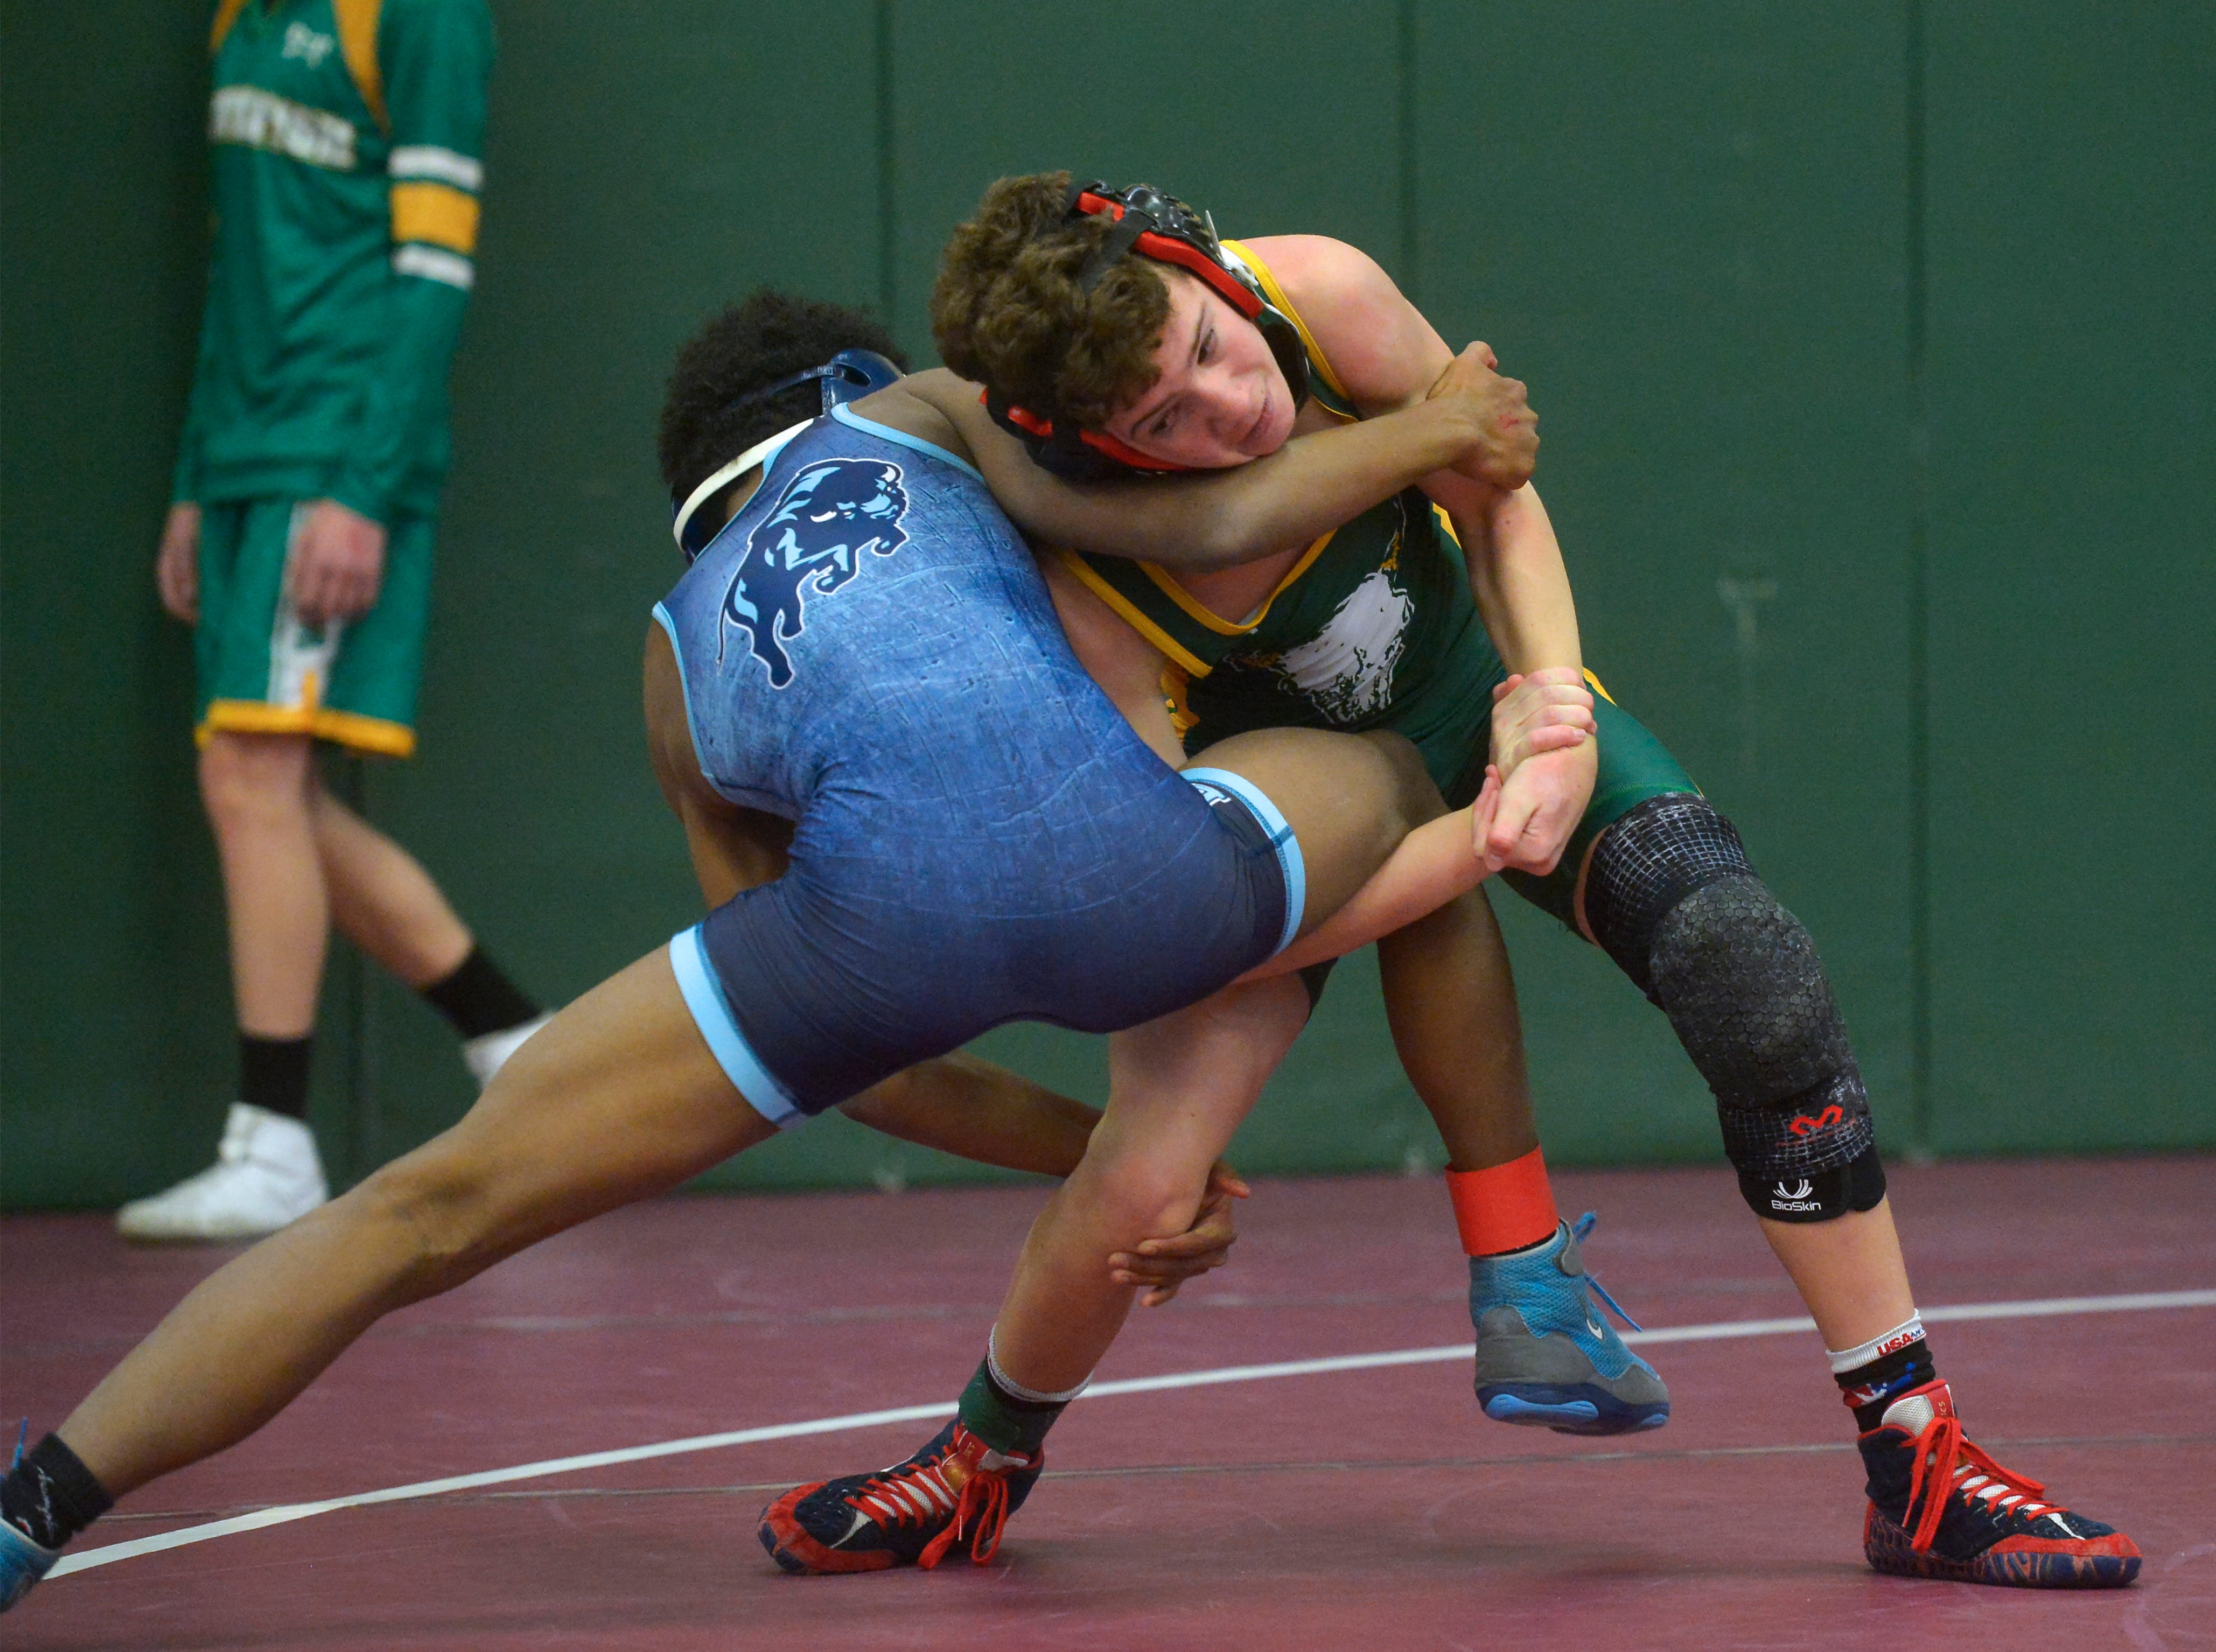 Great Falls High's Dre Coles wrestles against CMR's Colton Martello during the CMR Holiday Classic Wrestling Tournament in the CMR Fieldhouse on Friday.